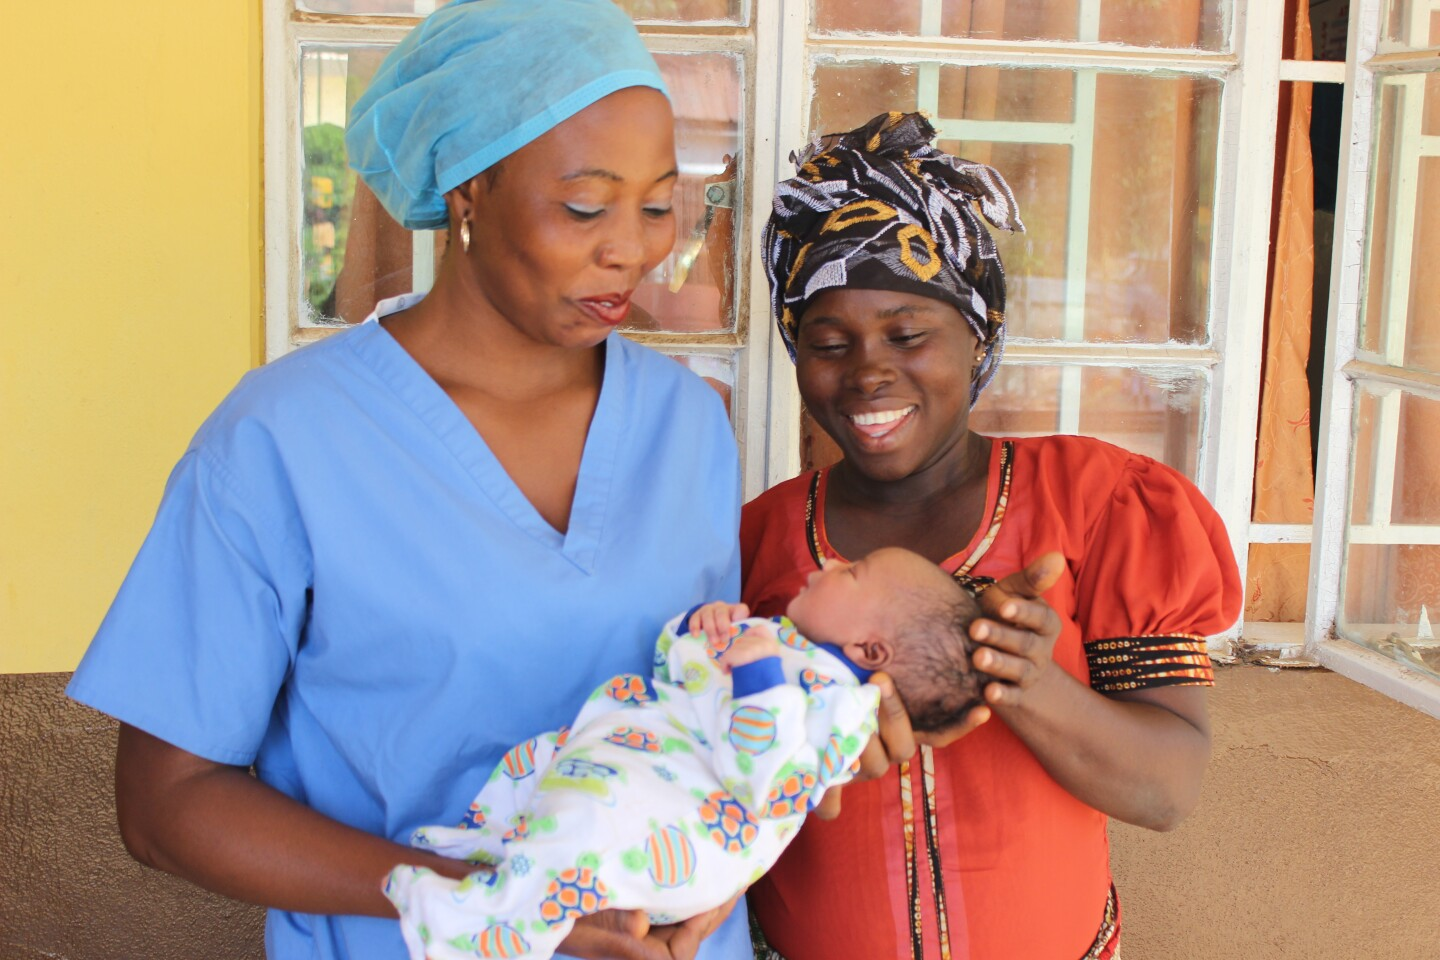 photo credit unfpa-midwifery-preterm births1.jpg